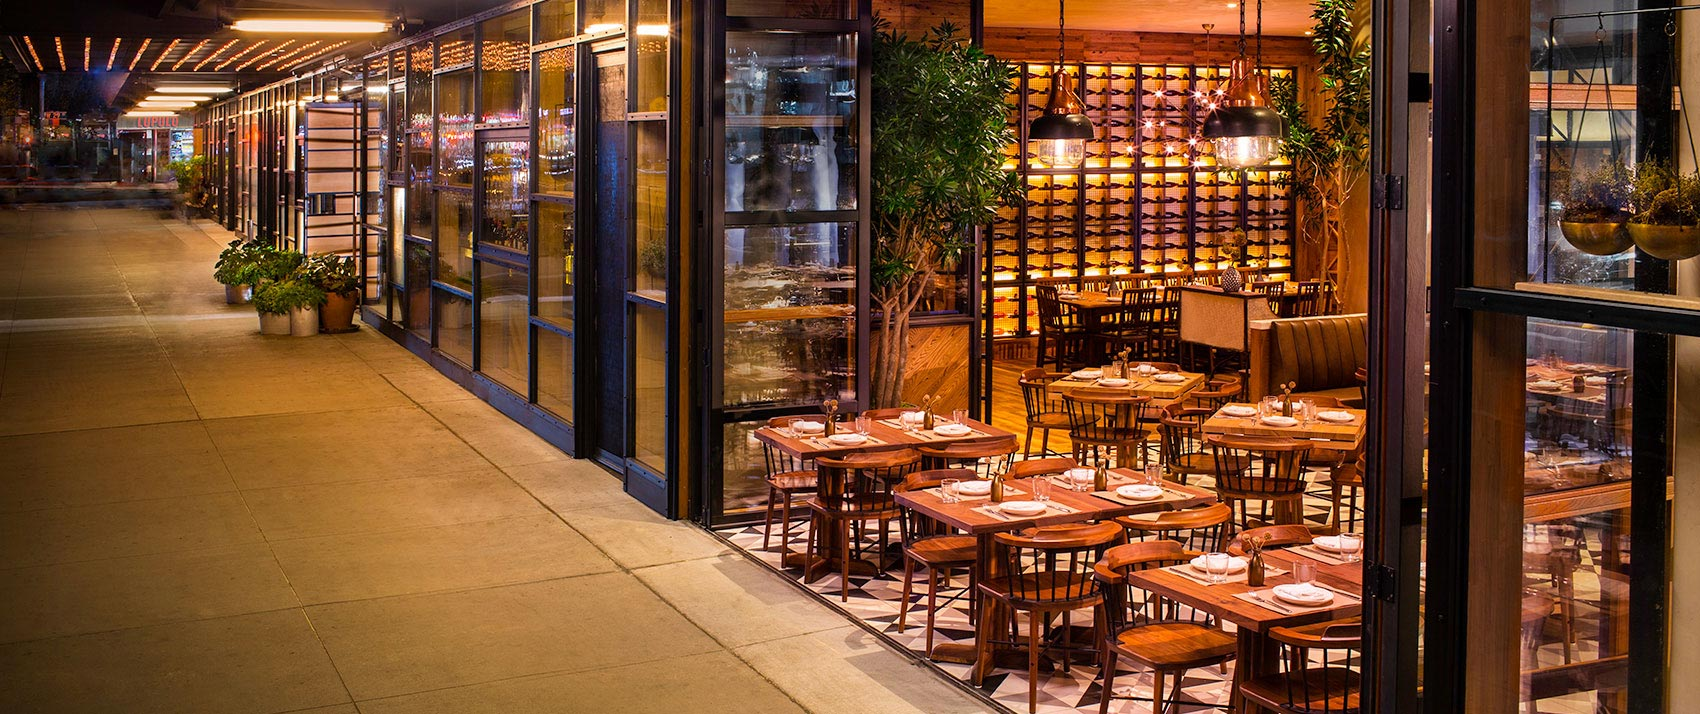 L'Amico restaurant open design with open doors and outdoor seating on sixth avenue